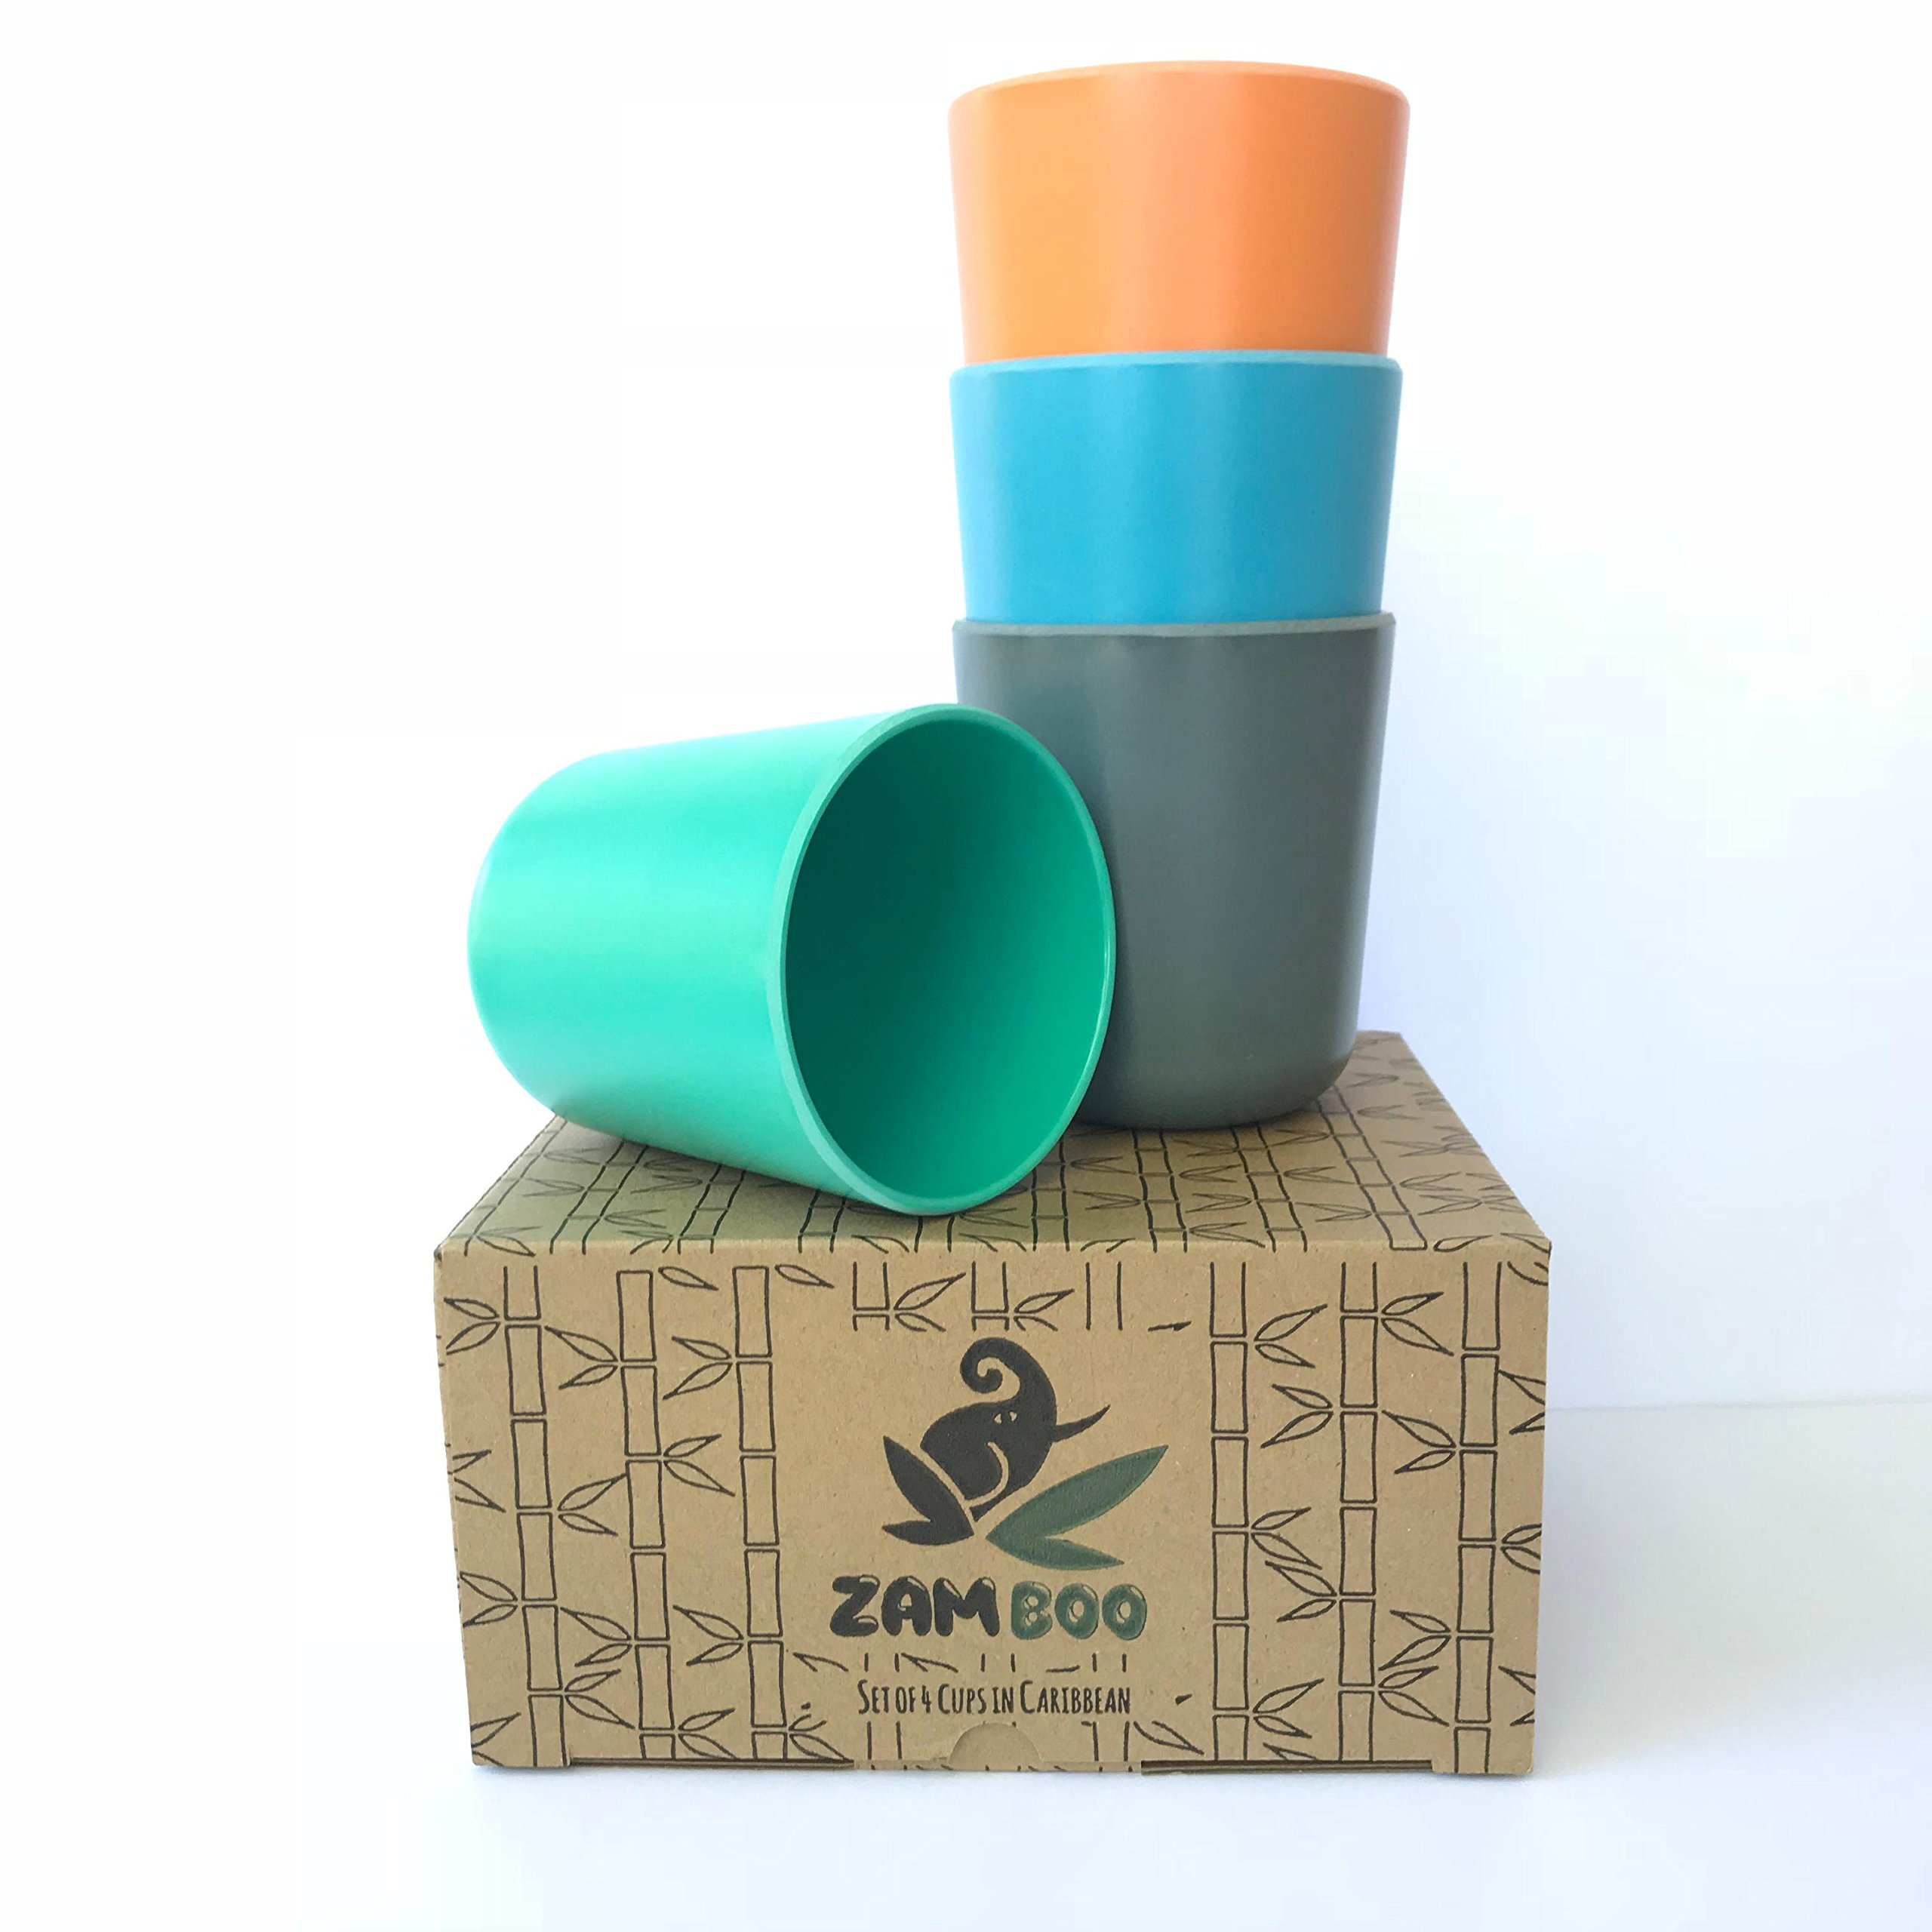 Zamboo Small Cups for Kids - Made from Eco Friendly Bamboo Fiber - Biodegradable Drinkware for Children, Toddlers, and Babies - Set of 4 Cup for Girl or Boy - Blue Green Orange Gray - Dishwasher Safe